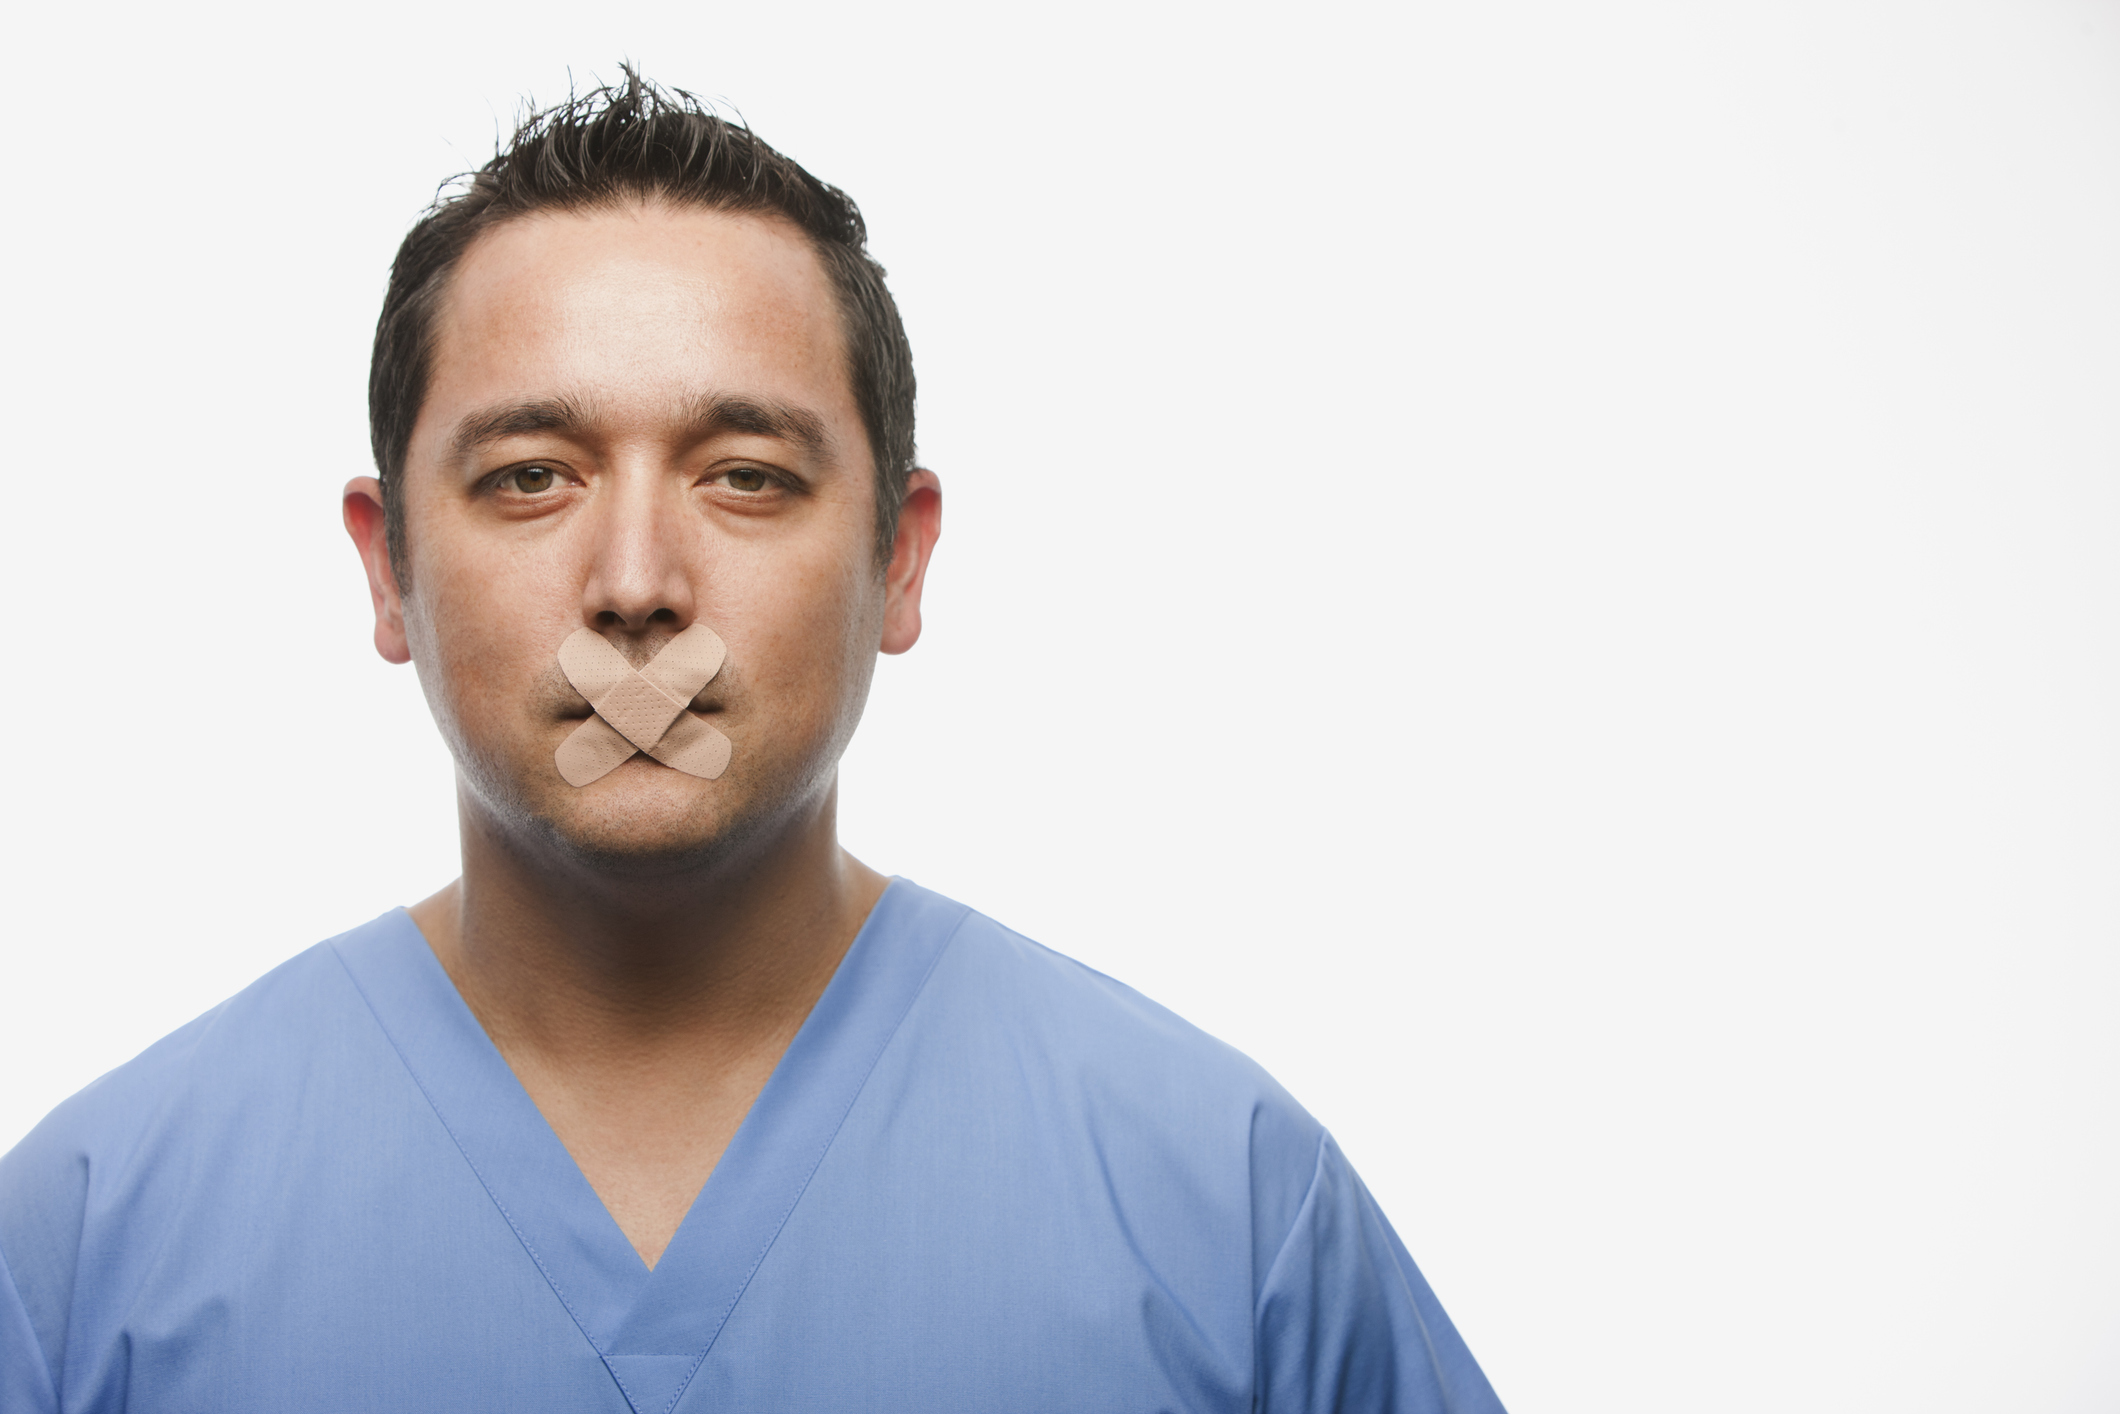 A latino provider with two bandaids covering his mouth